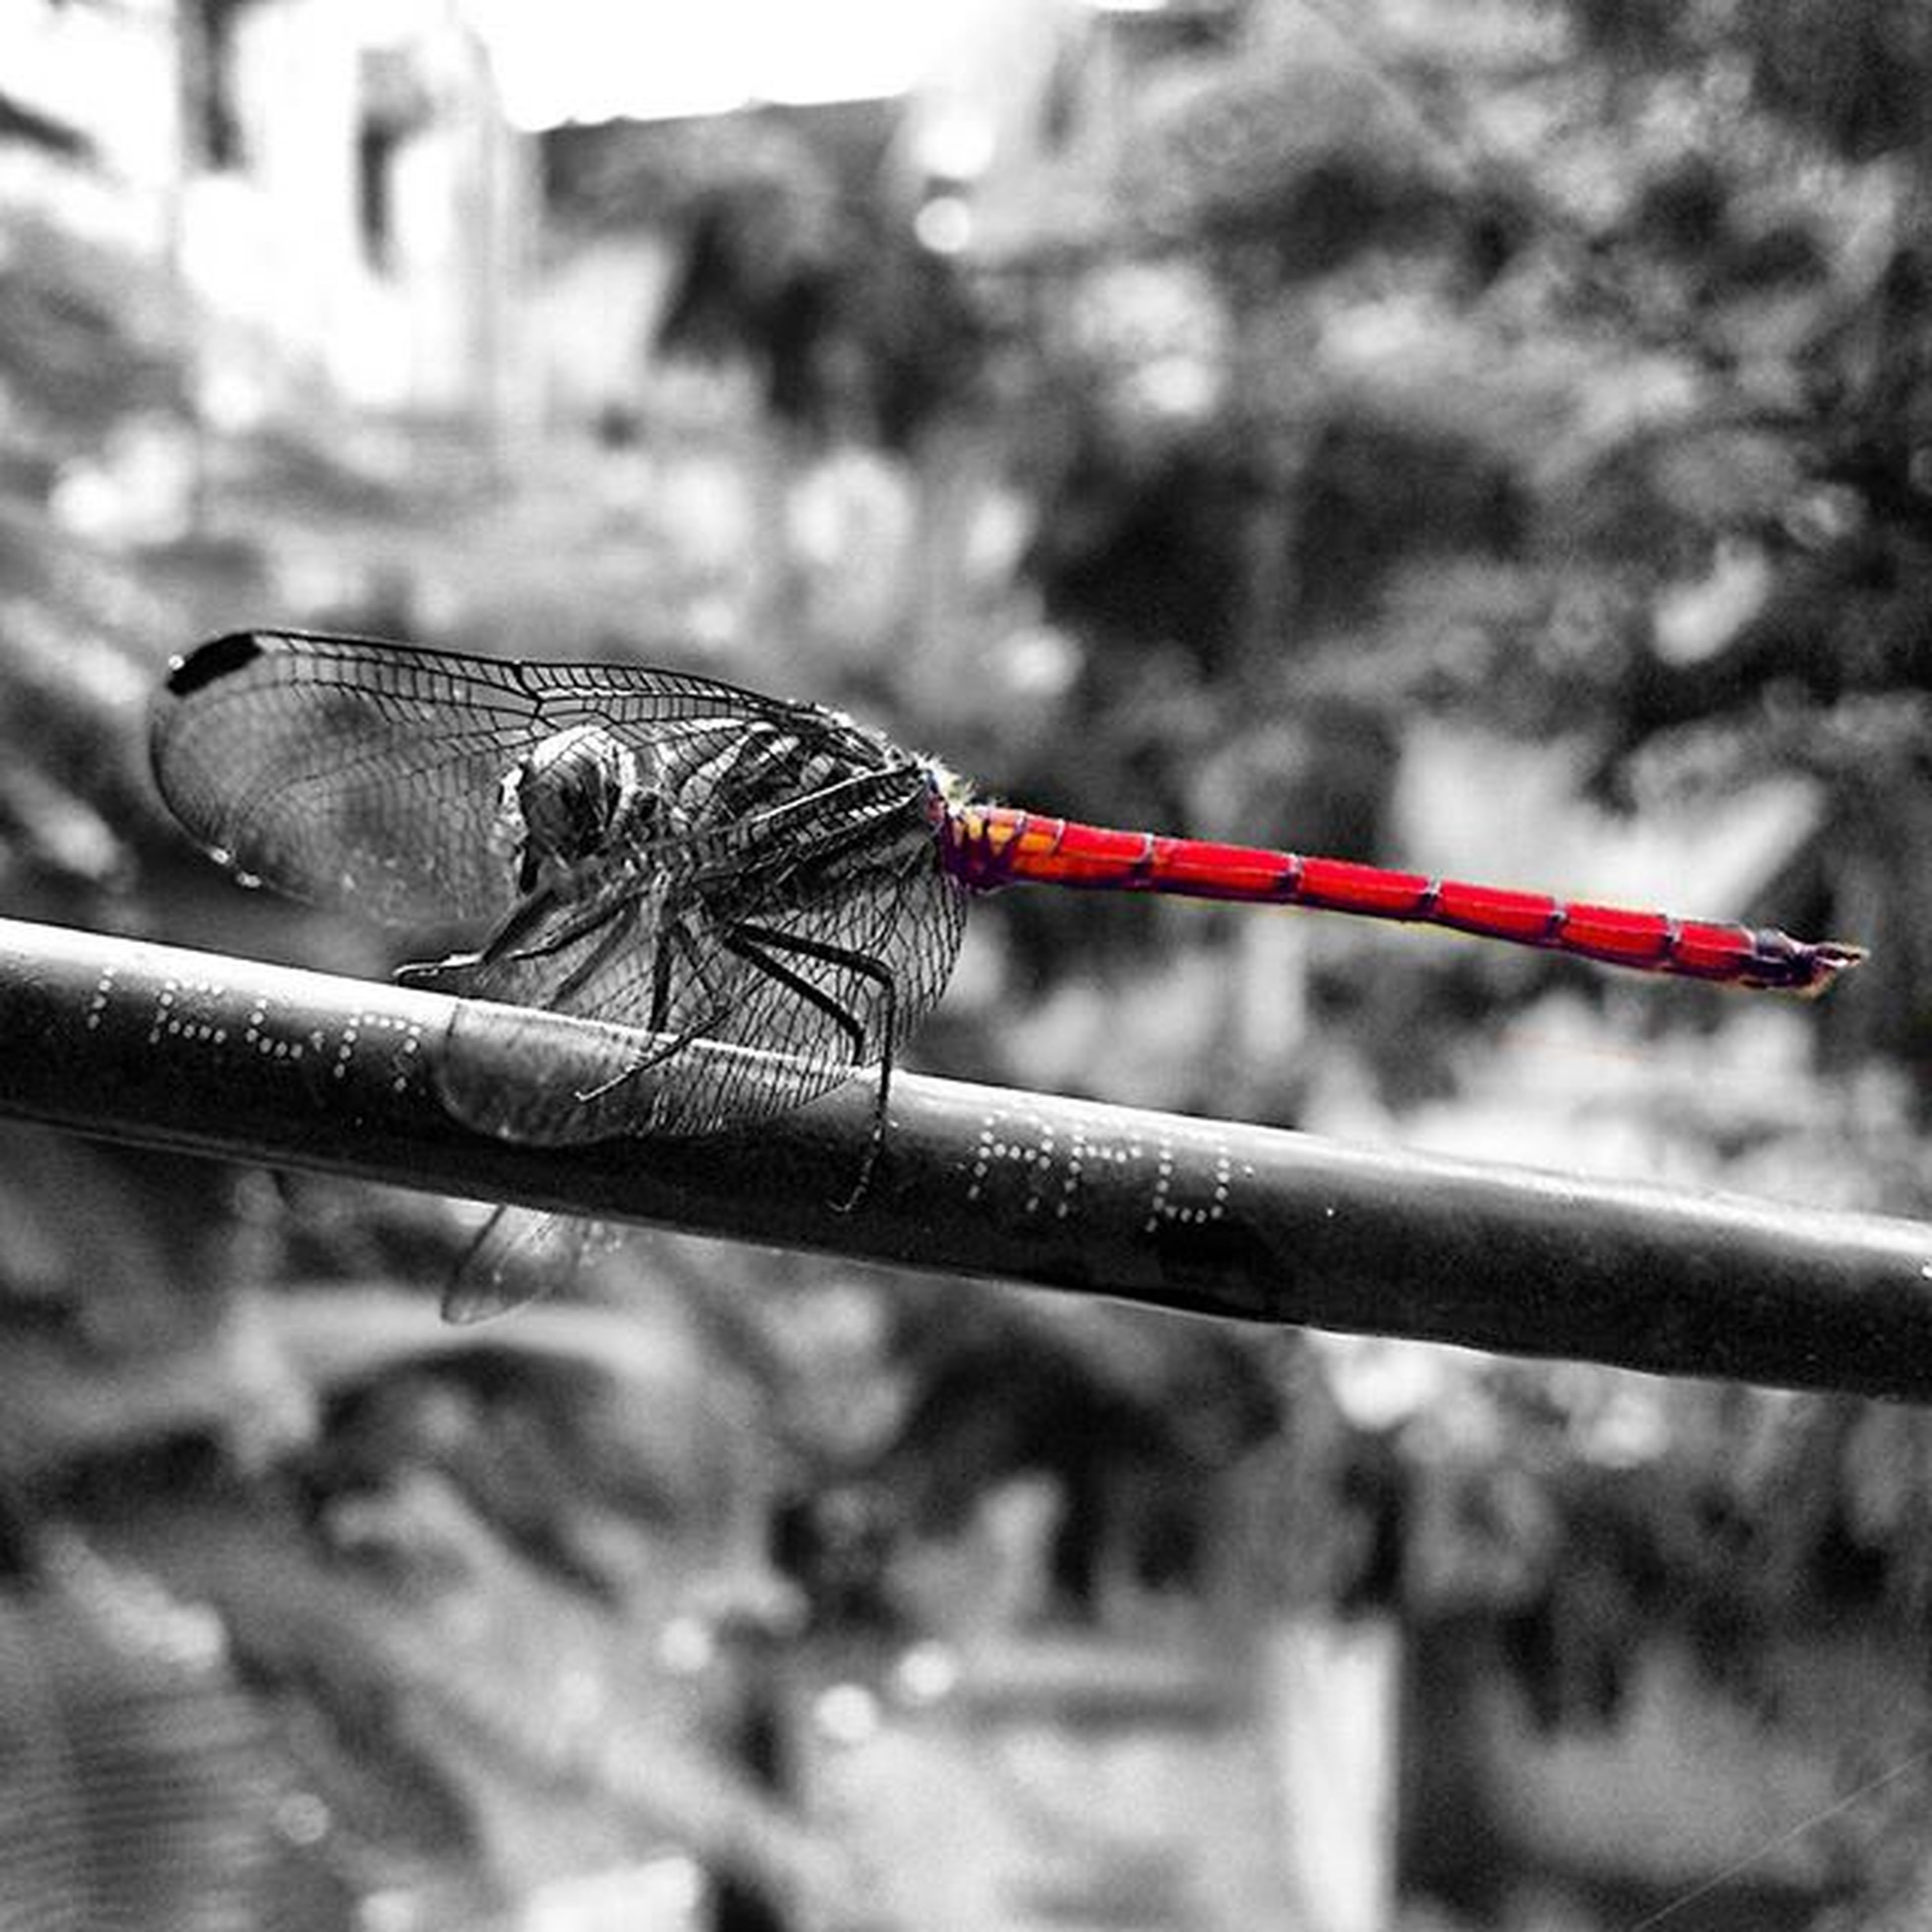 animal themes, one animal, animals in the wild, wildlife, focus on foreground, close-up, insect, perching, full length, bird, day, dragonfly, outdoors, side view, nature, no people, selective focus, animal wing, metal, animal antenna